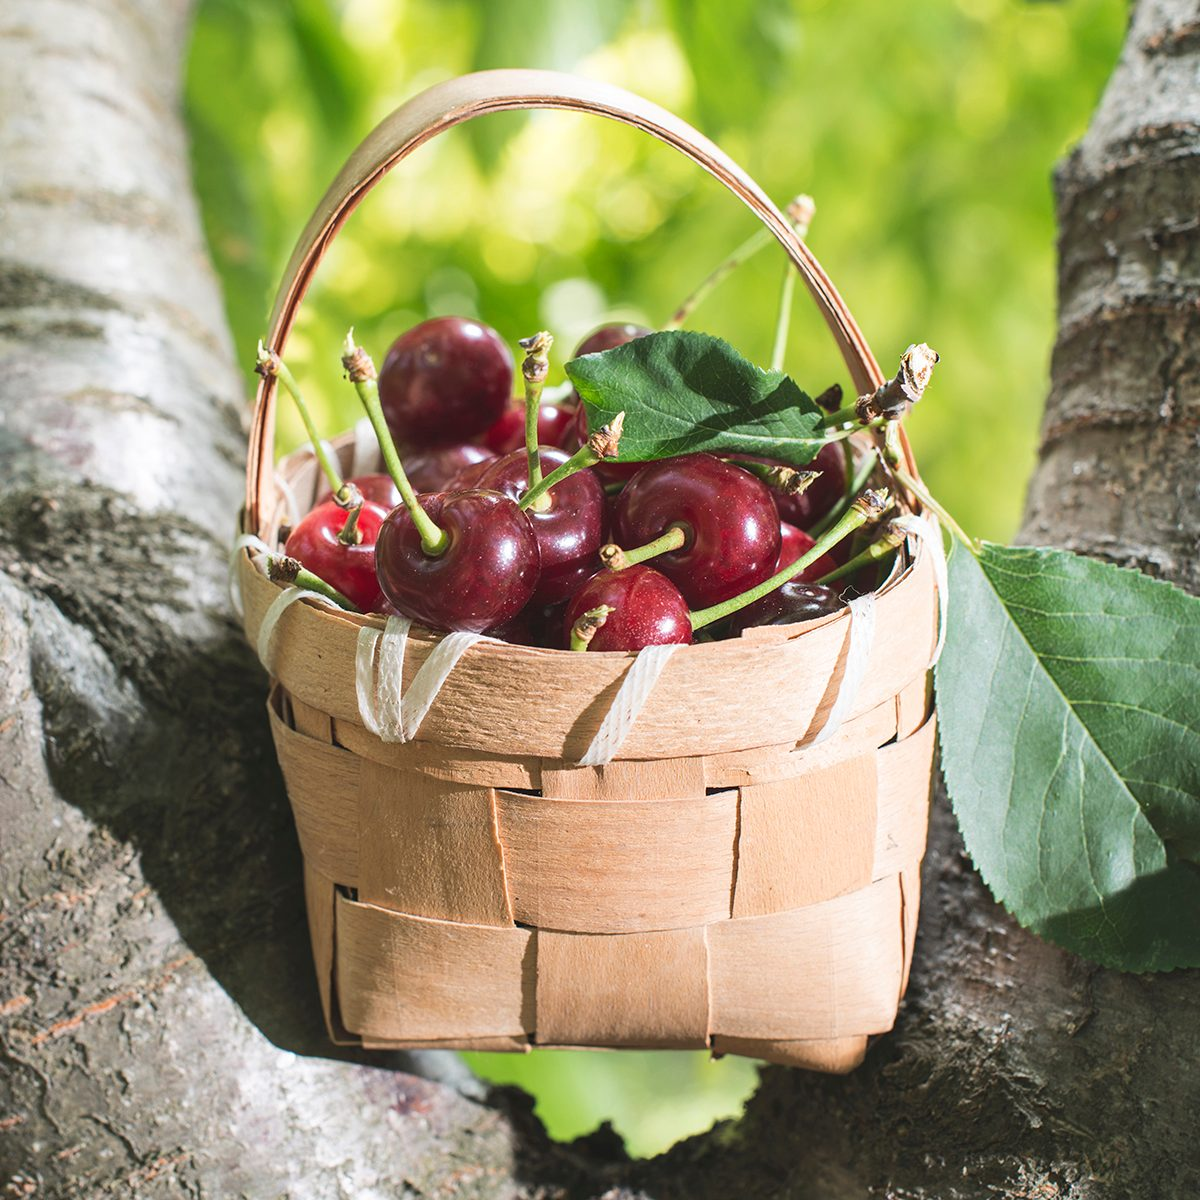 Morello Cherries in a basket on a tree. Bulgaria, Plovdiv